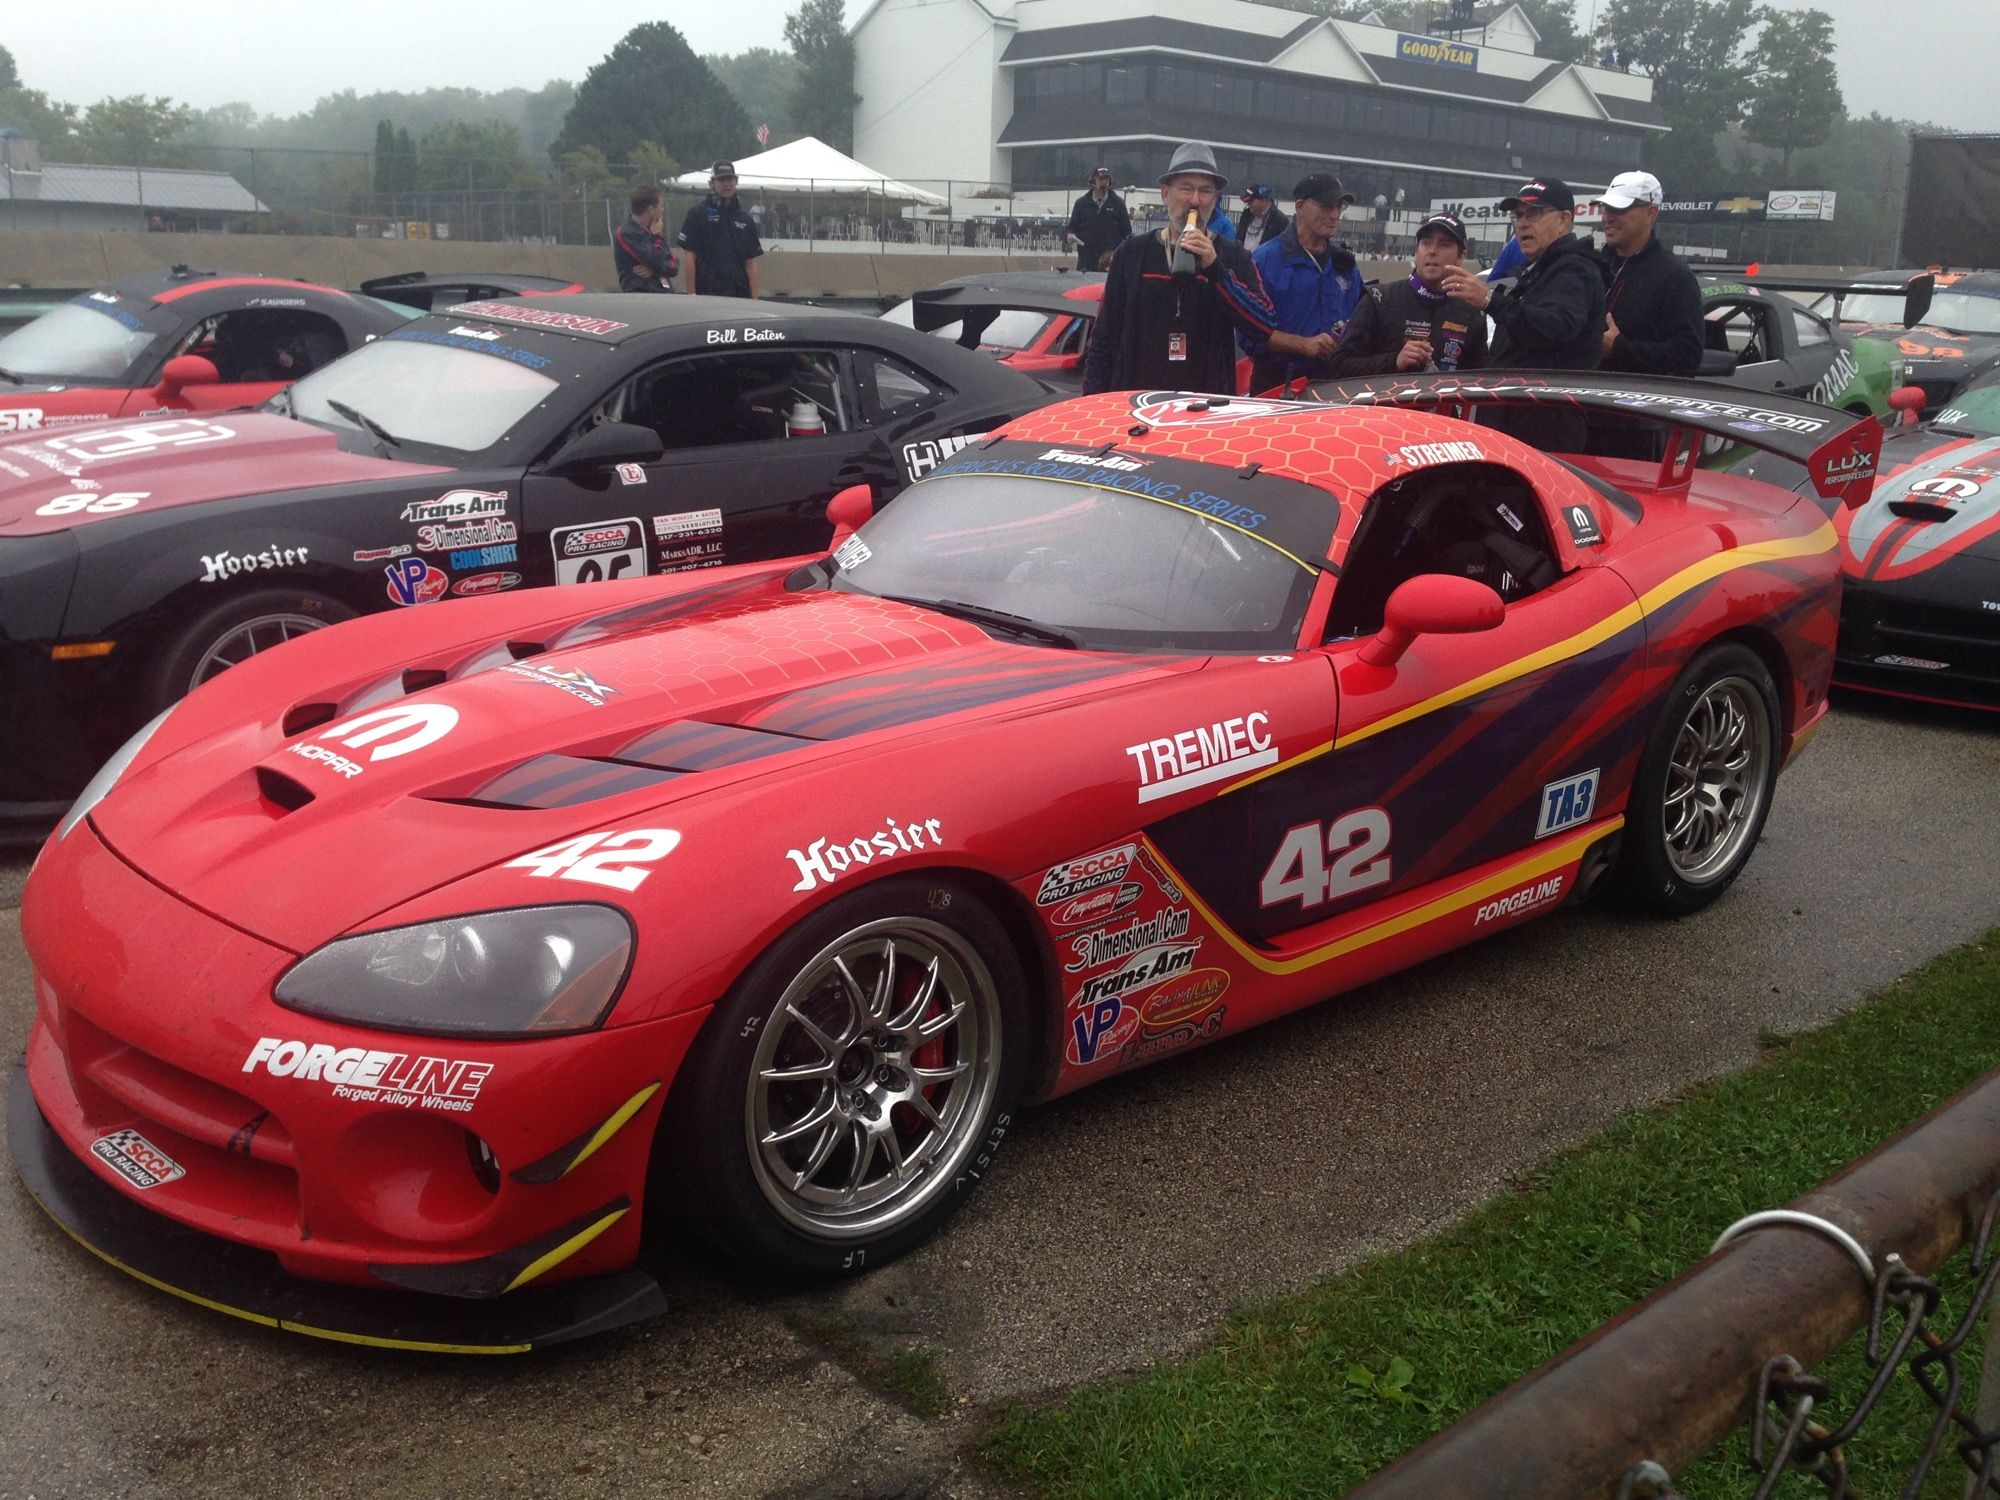 A great day for the Trans Am Racing Series at Road America today! Steve Streimer wins TA3i and Cindi Lux Fan Page takes 2nd in their Lux Performance Dodge Vipers on Forgeline GA3R-6 wheels!  #Forgeline #GA3R6 #notjustanotherprettywheel #madeinUSA #Dodge #Viper